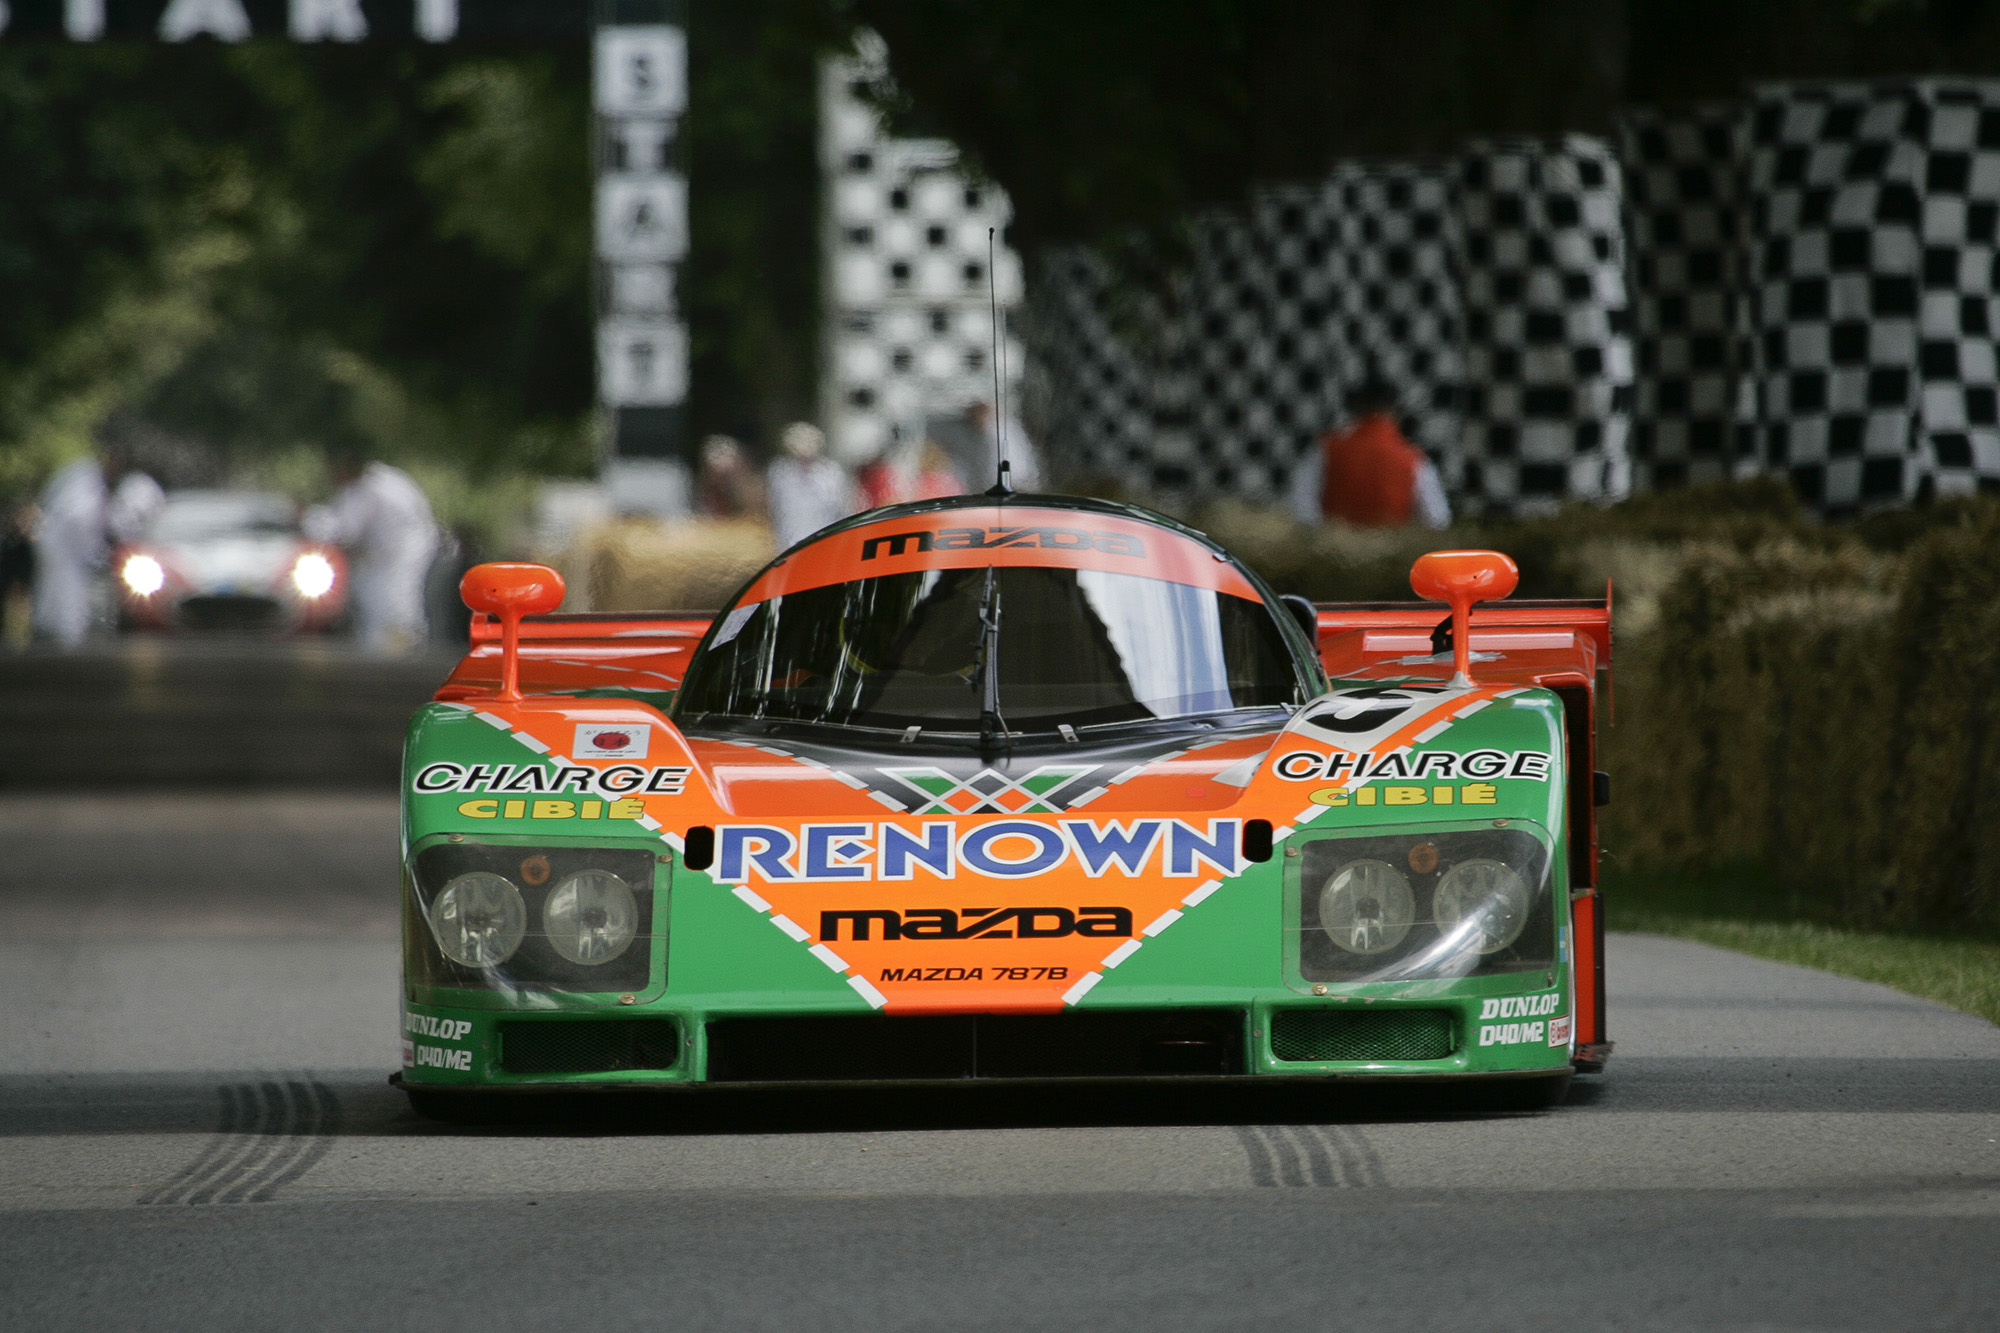 Goodwood Festival Of Speed To Celebrate Mazda This Year